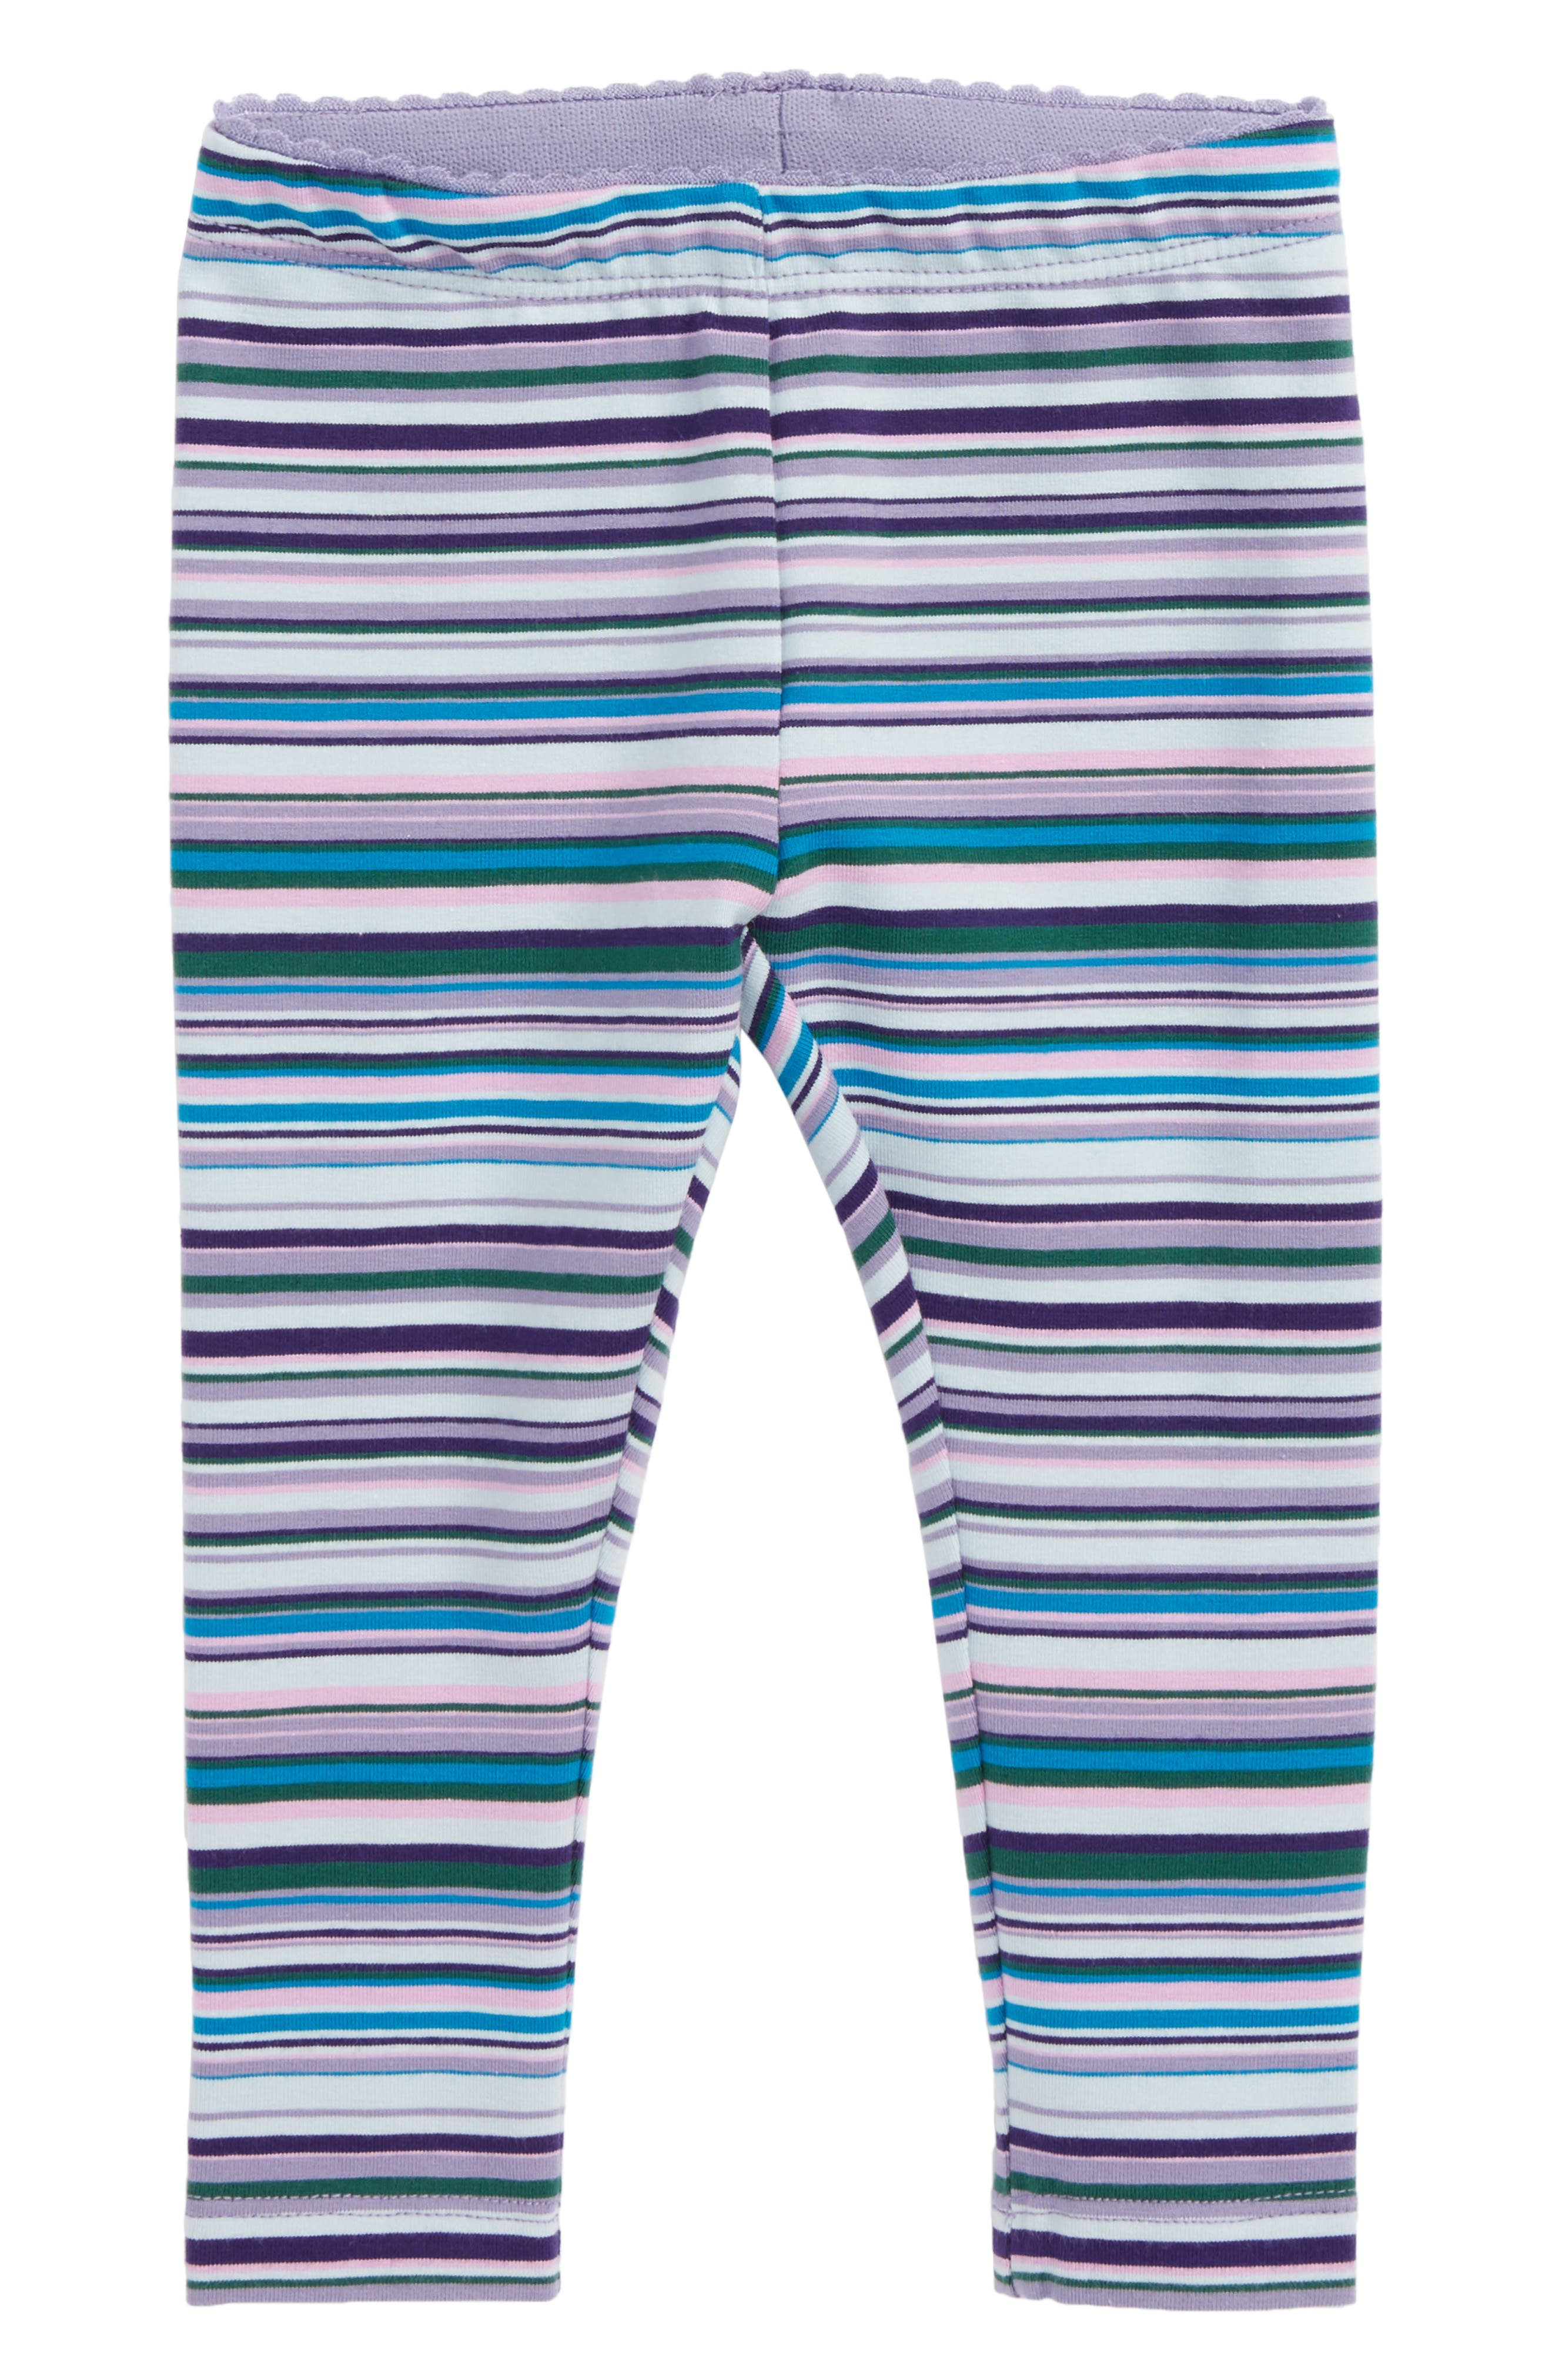 Stripe Leggings,                             Main thumbnail 1, color,                             519